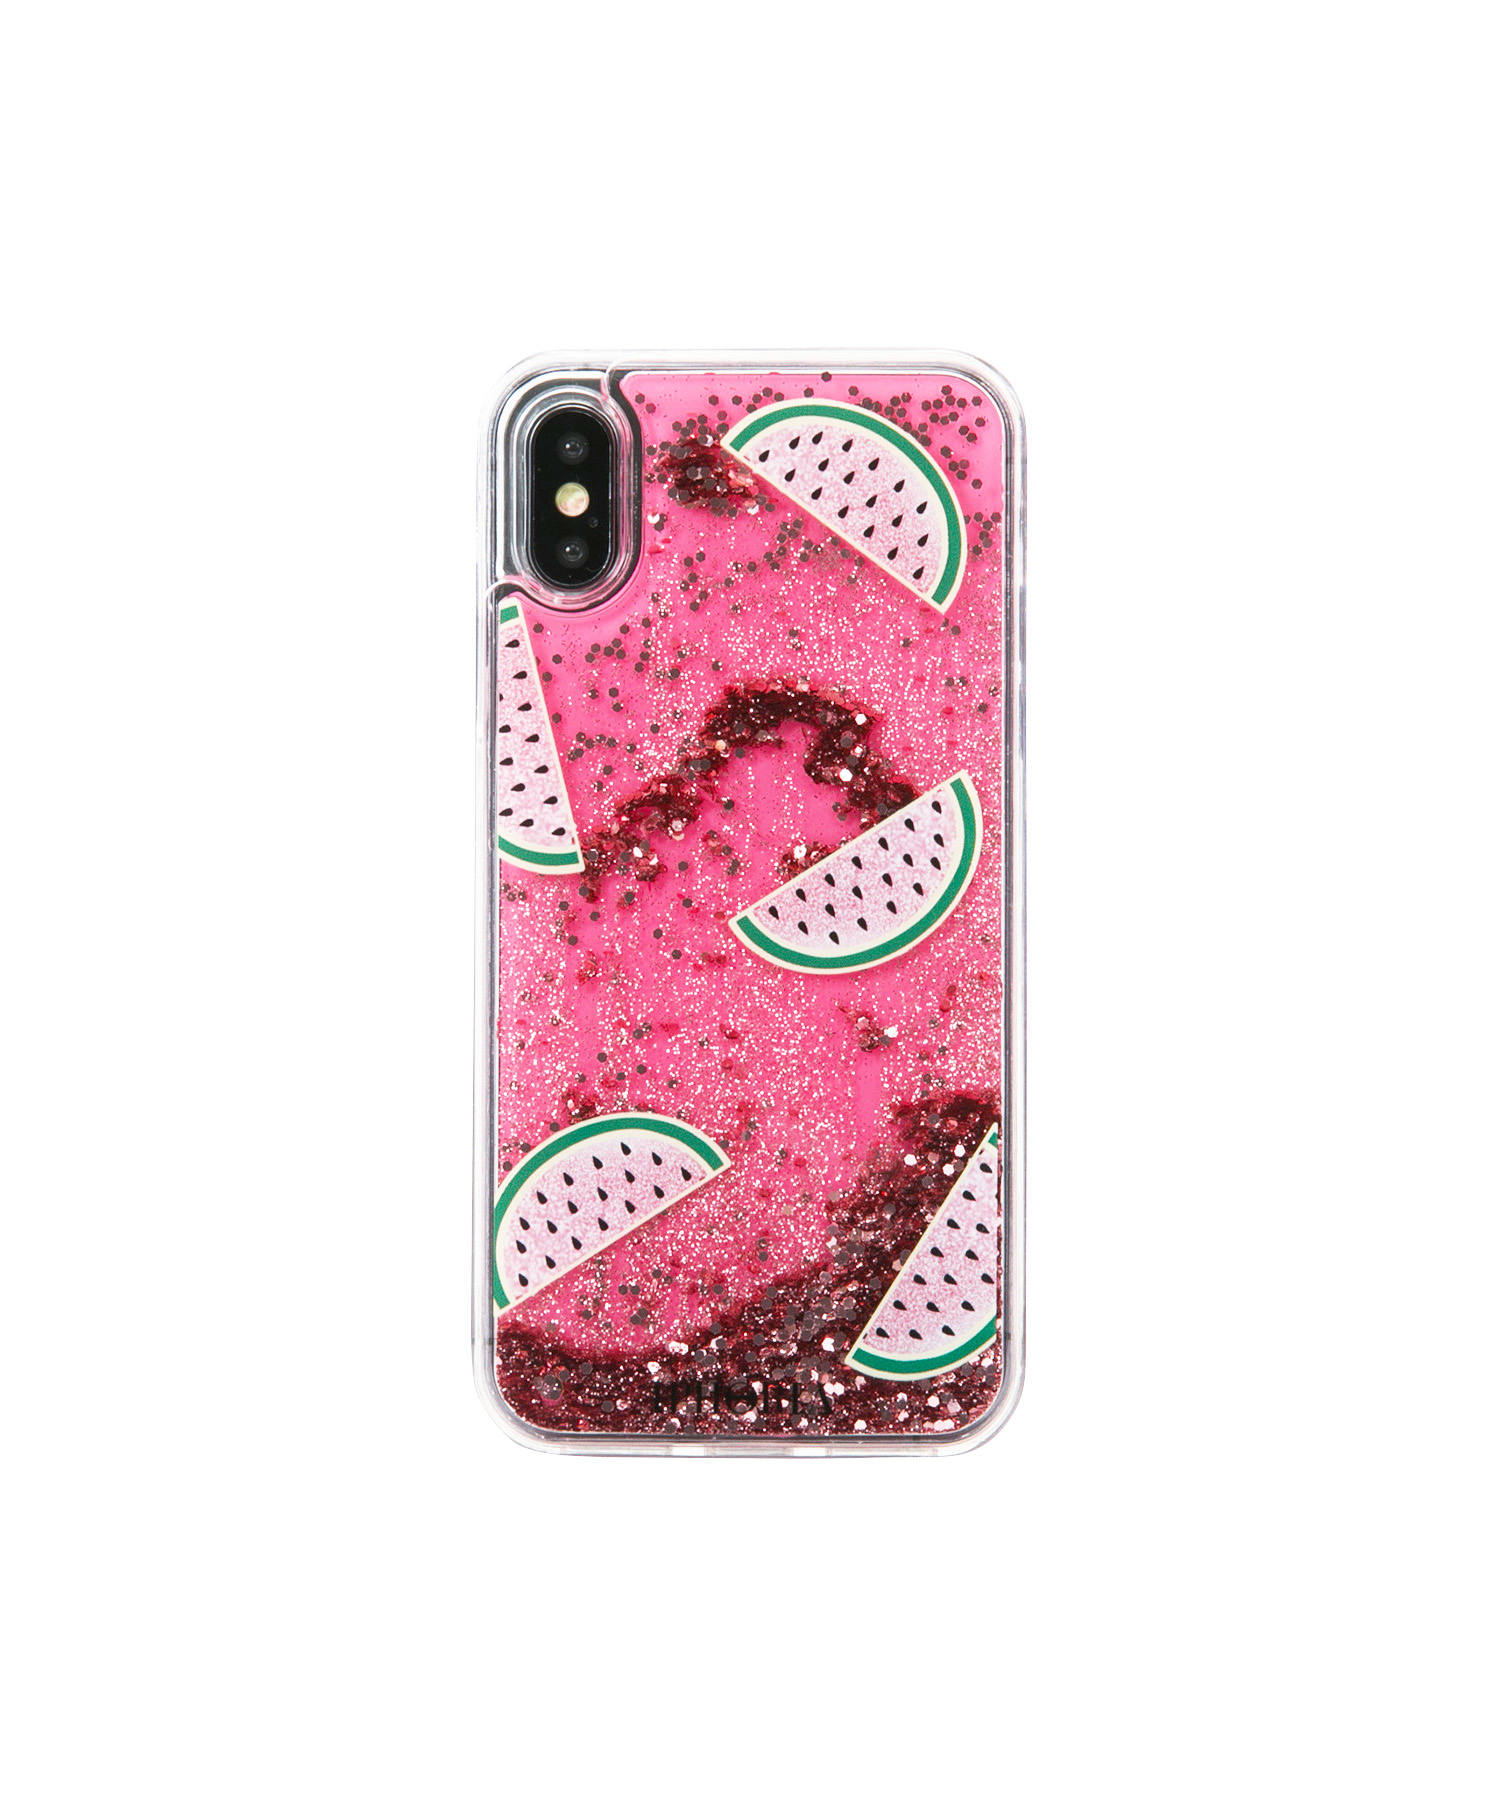 Liquid Case for Apple iPhone X/XS - Melon Glitter Gold